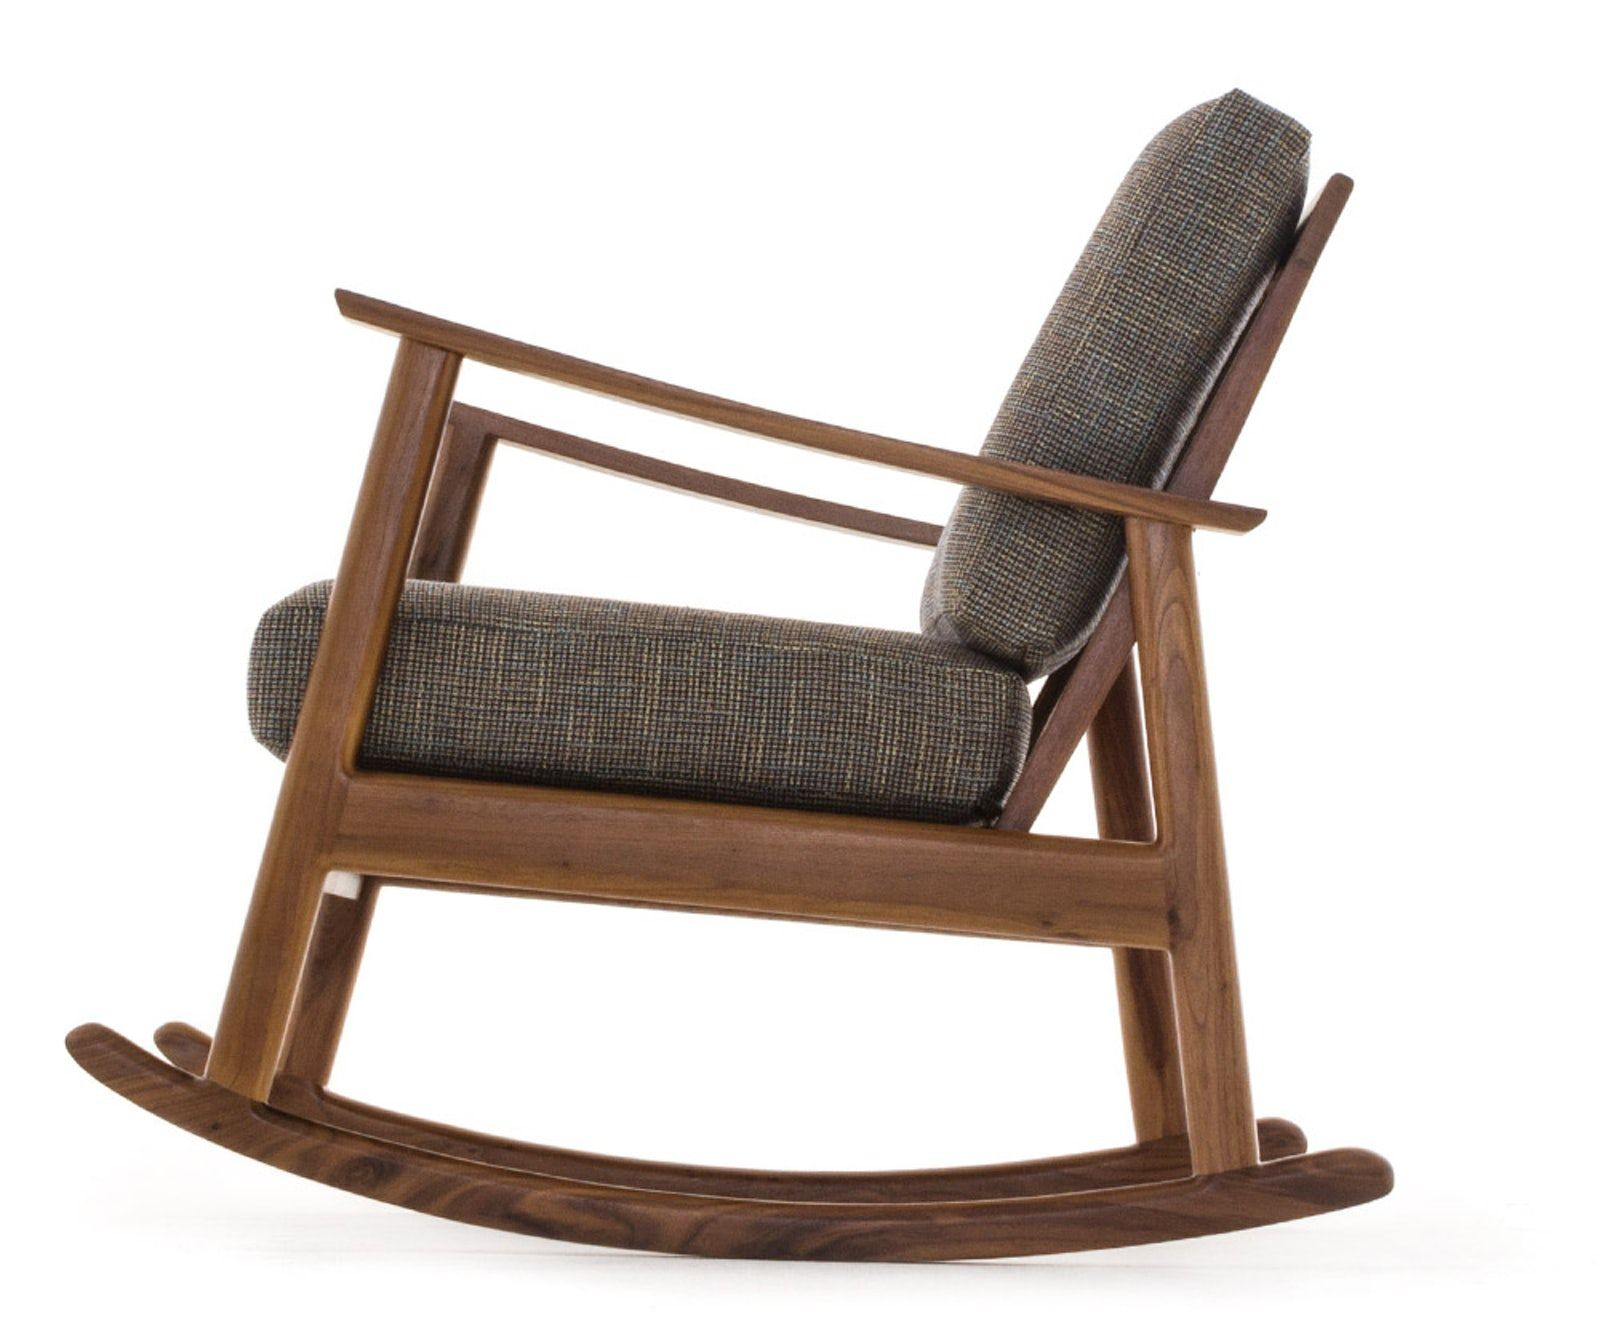 Paley Rocking Chair Rocking Chair Contemporary Rocking Chair